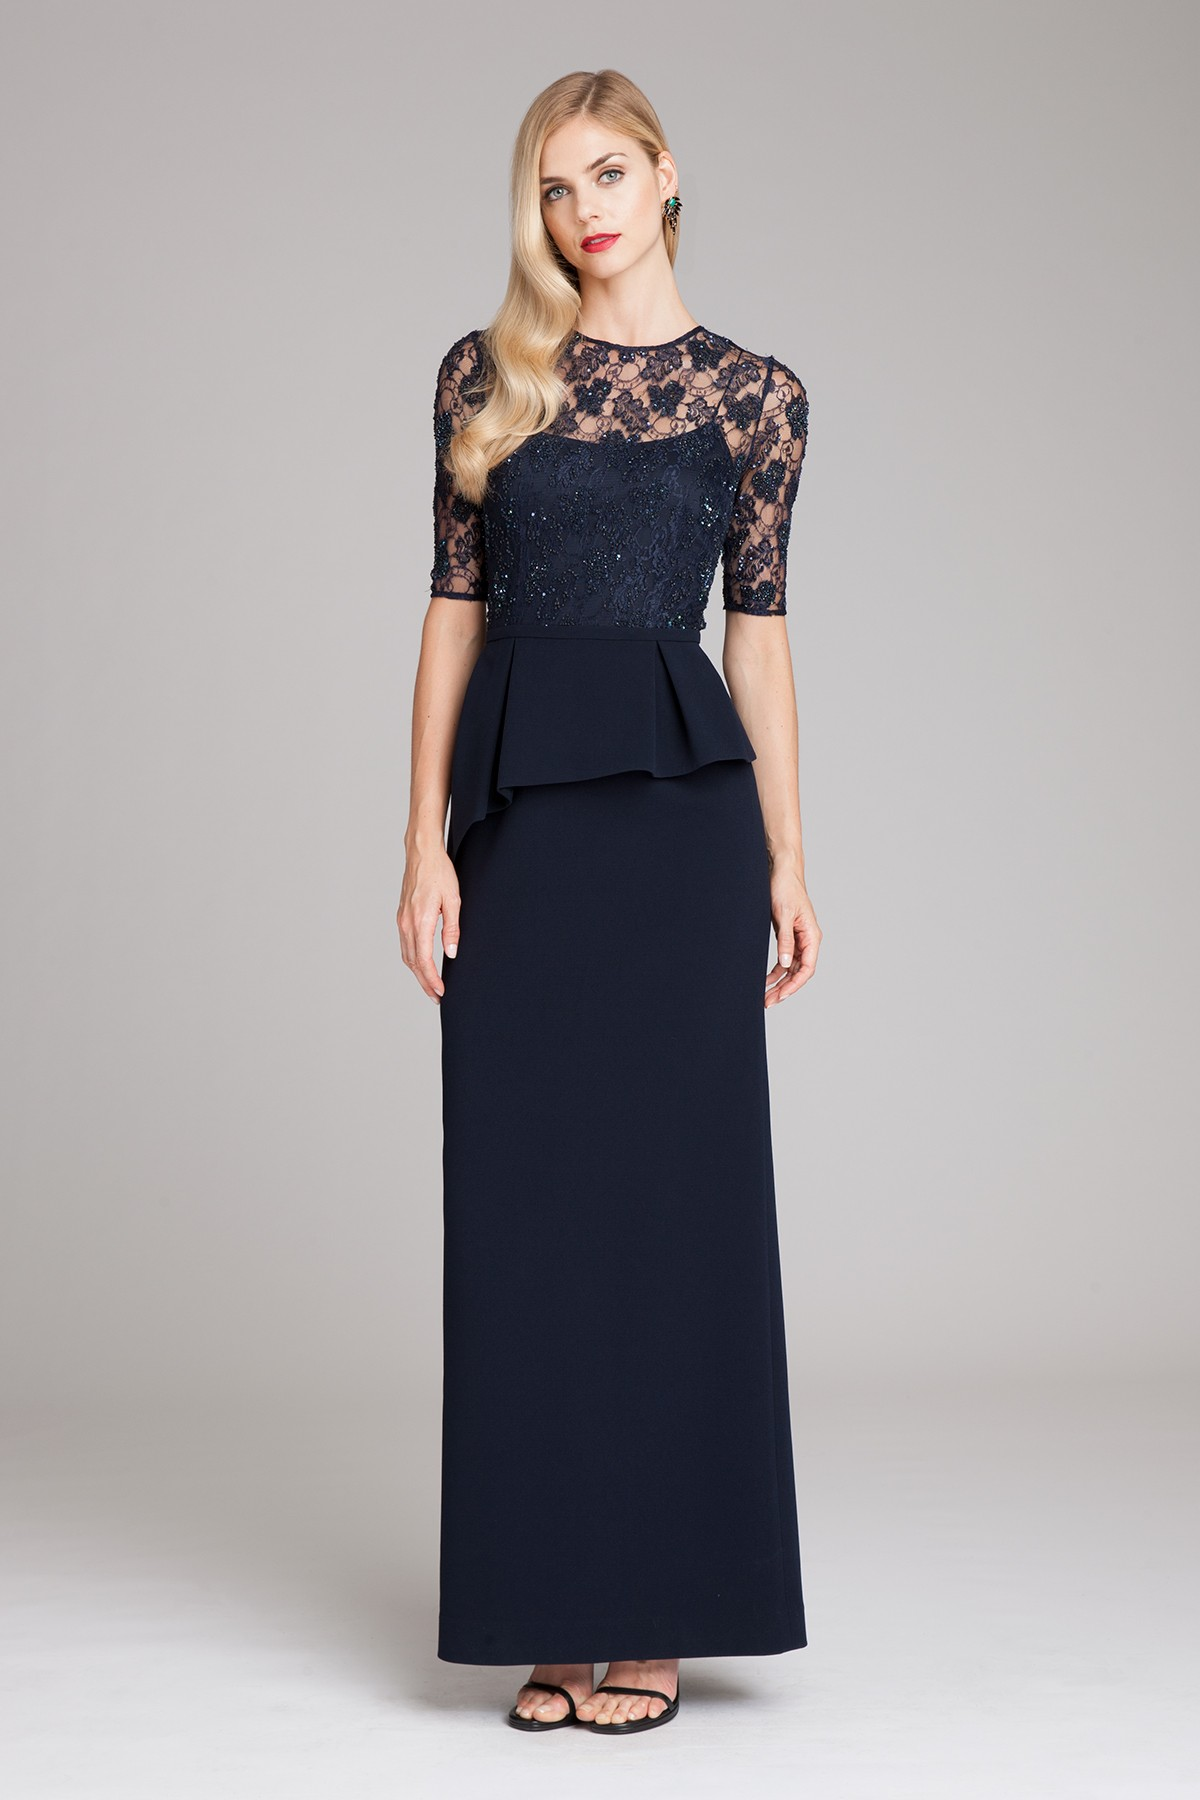 Dress Picks from Teri Jon | Dress for the Wedding